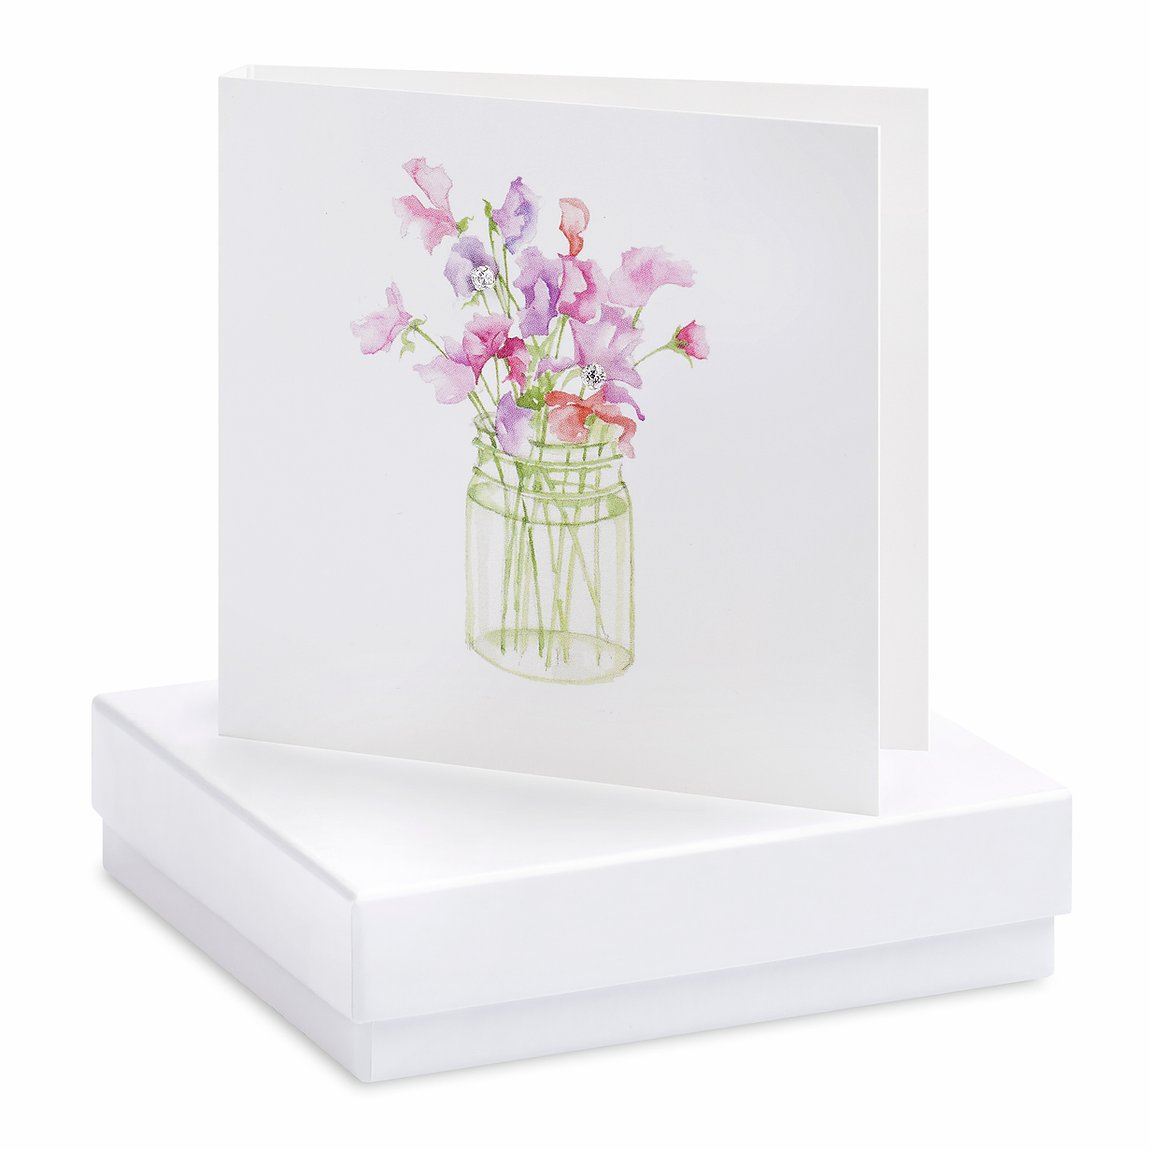 Boxed Sweet Pea Earring Card with Sterling Silver Crystal Studs